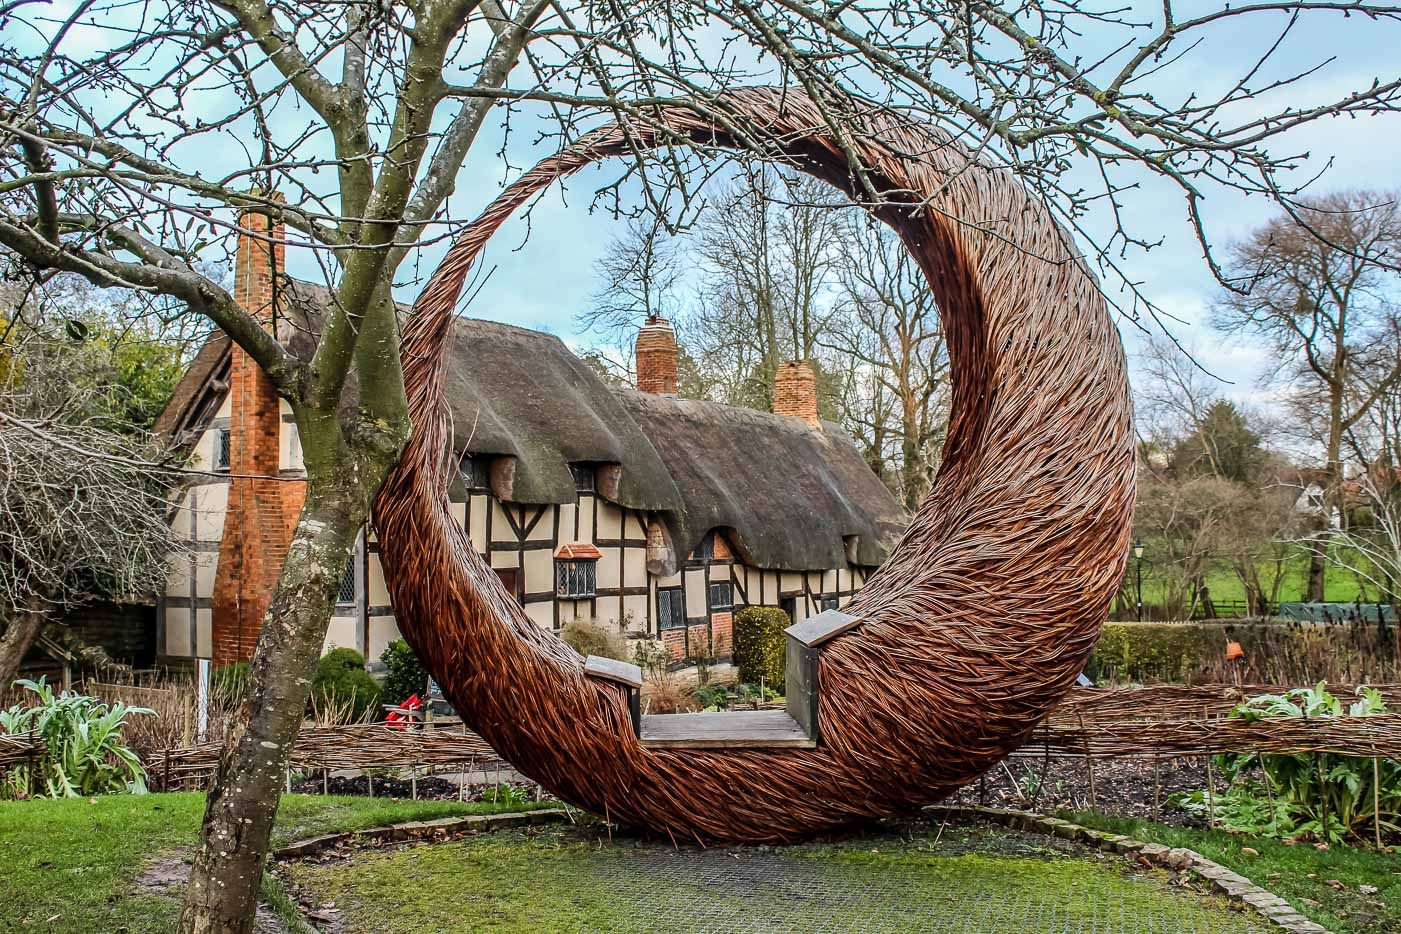 Guide to Shakespeare's journey in Stratford upon Avon